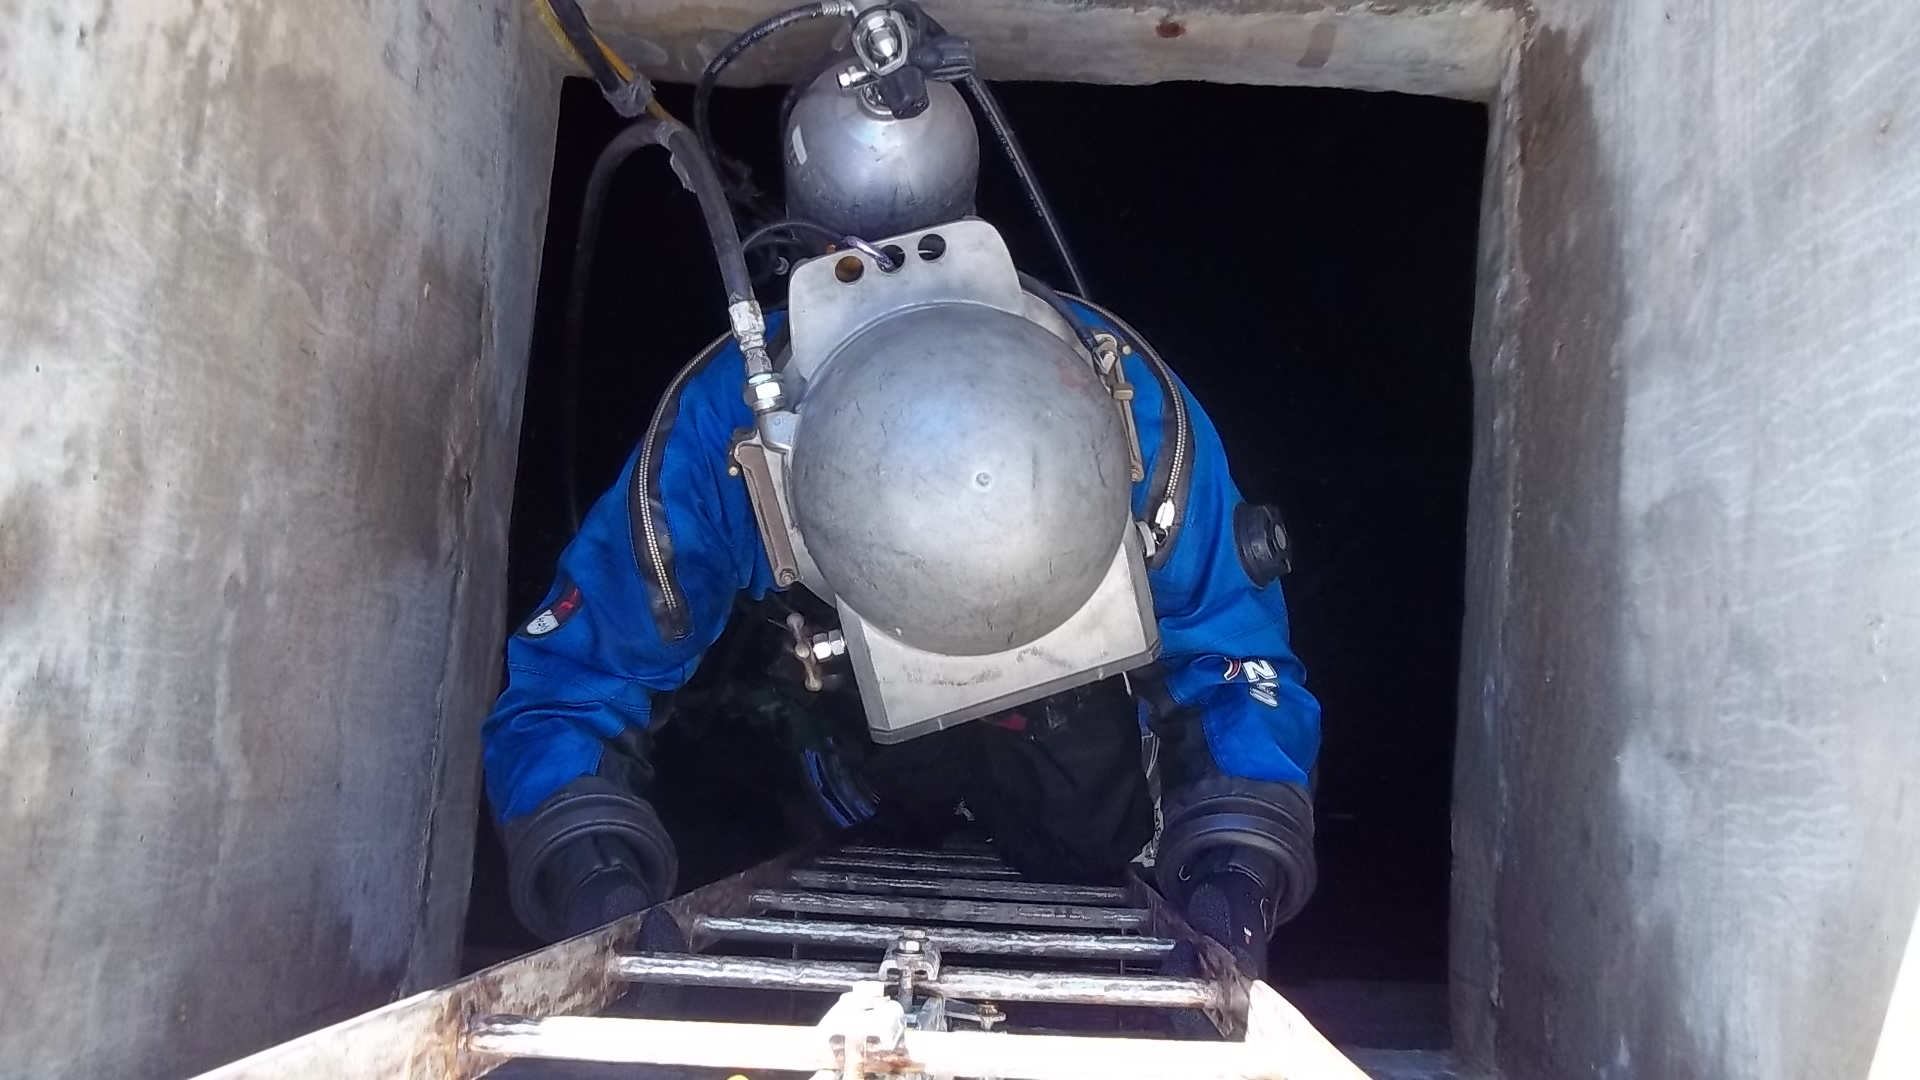 Potable Water Diver  Water Tower Inspector Wanted  The